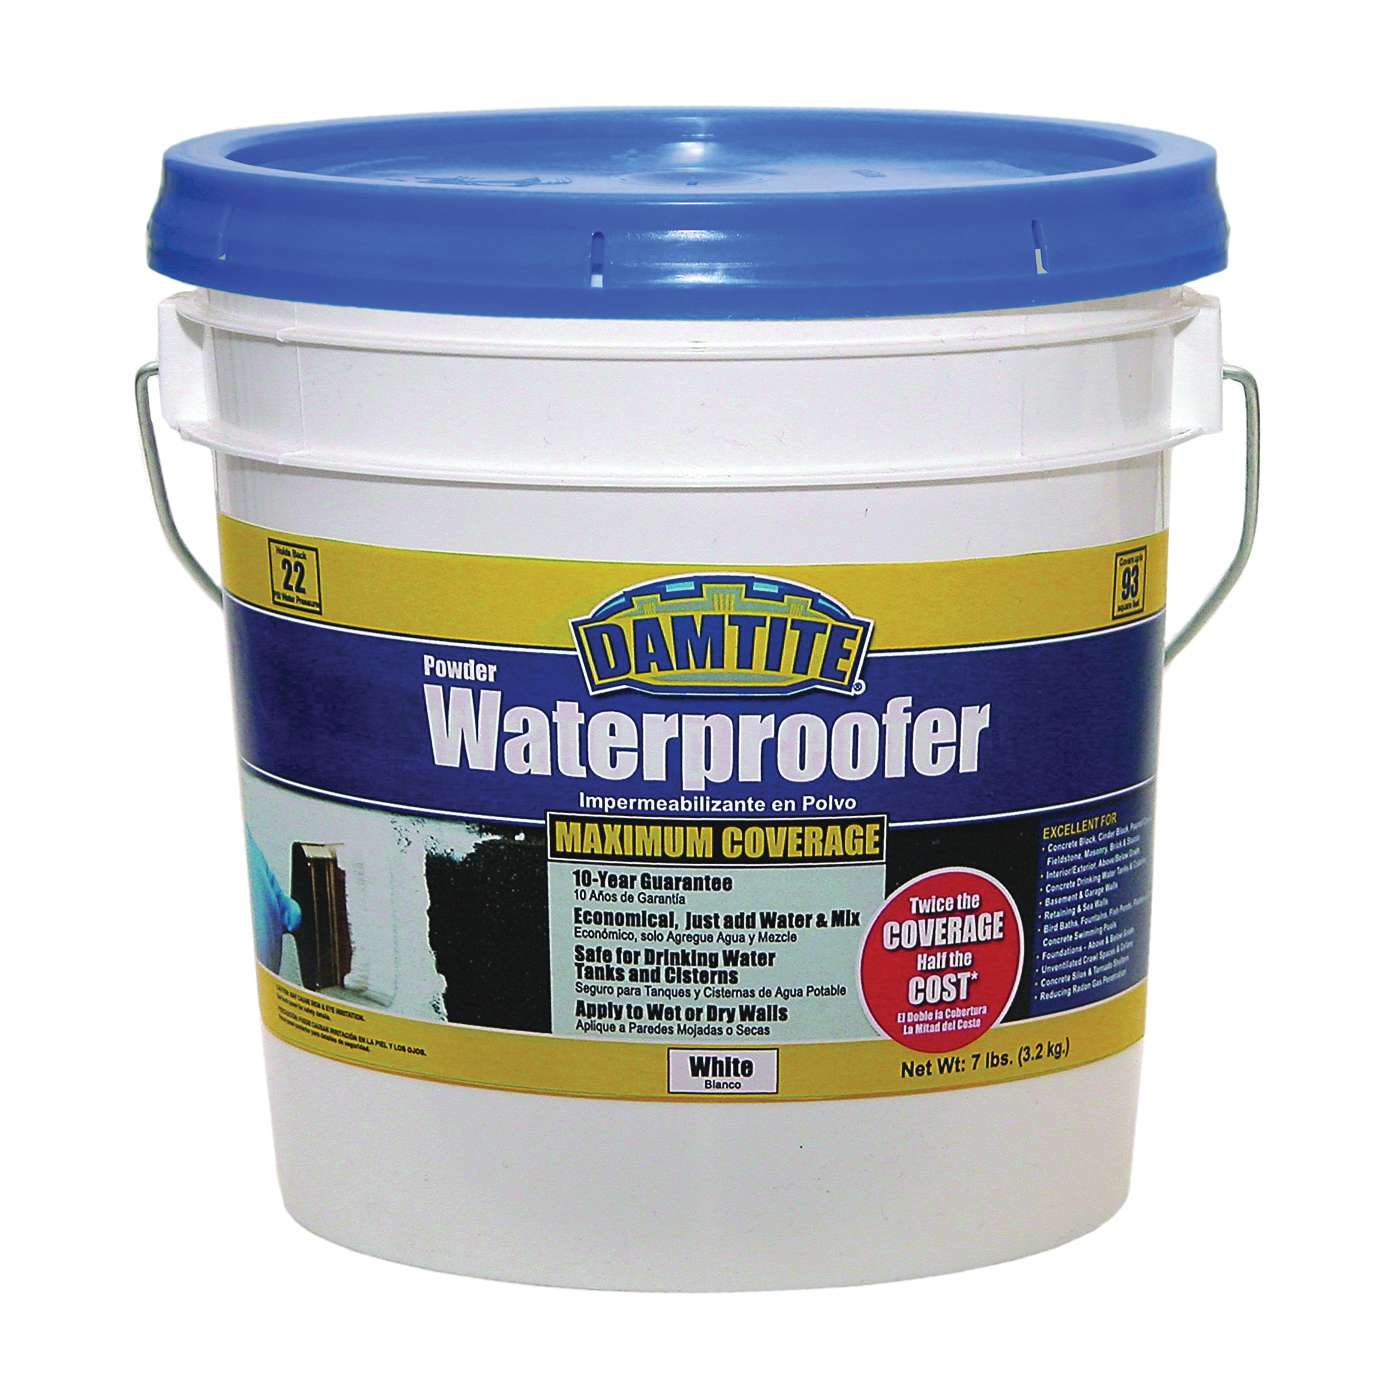 Picture of DAMTITE 01071 Powder Waterproofer, White, Powder, 7 lb Package, Pail